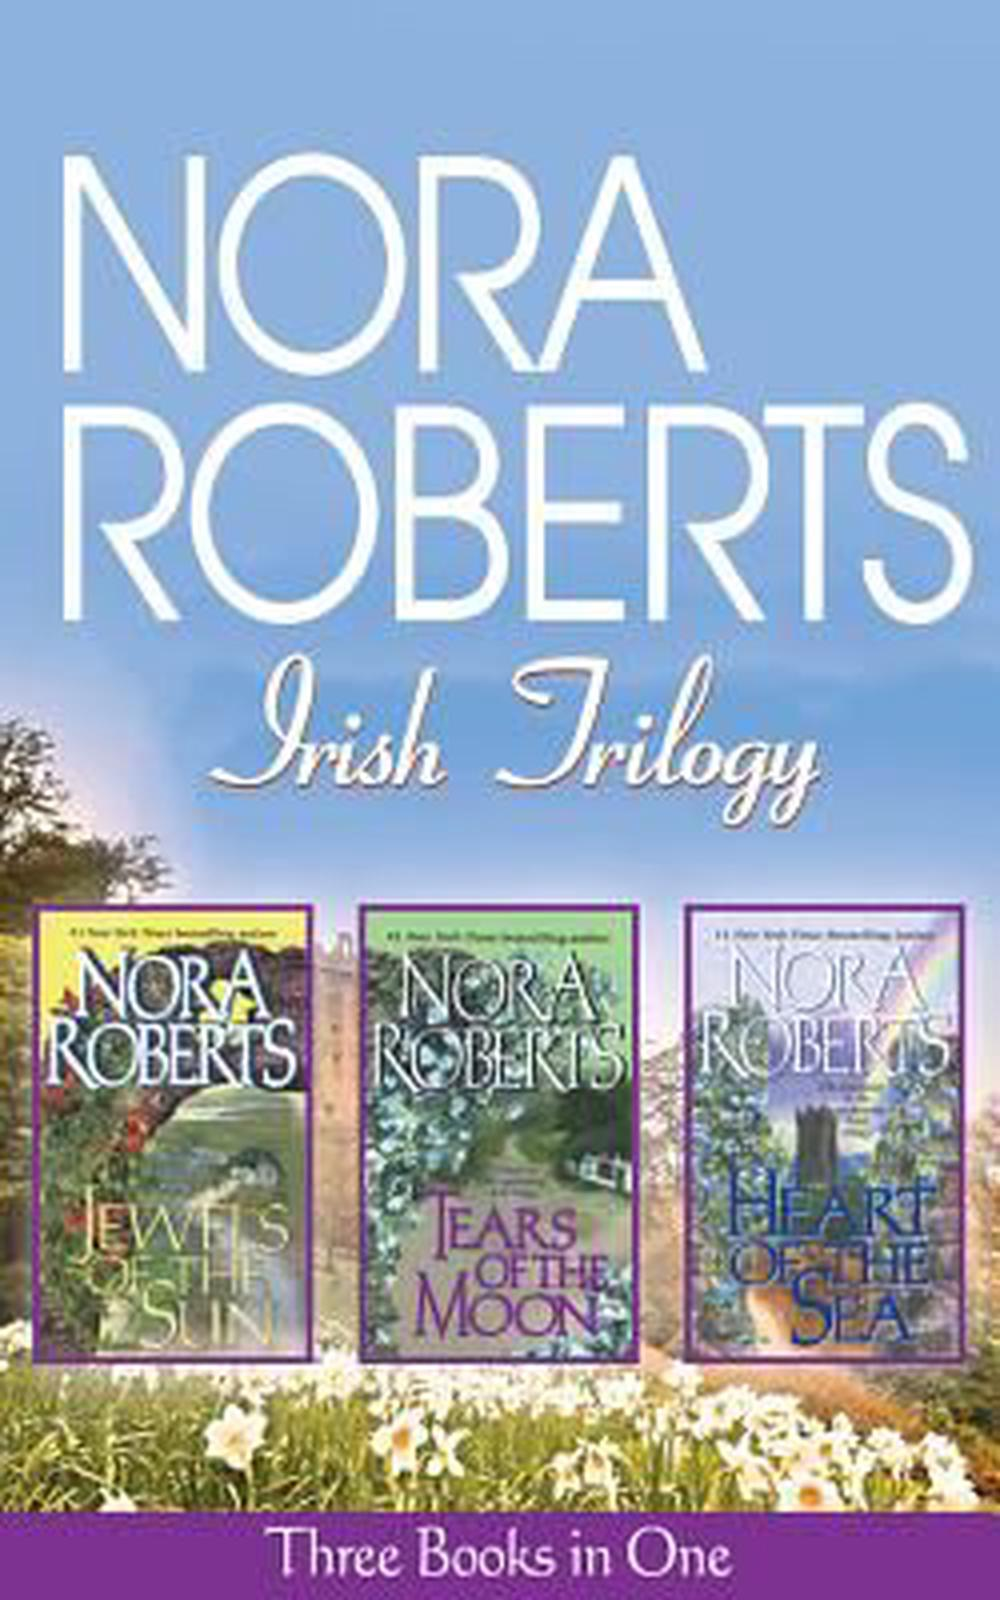 Nora Roberts Irish Trilogy: Jewels of the Sun/Tears of the Moon/Heart of the Sea